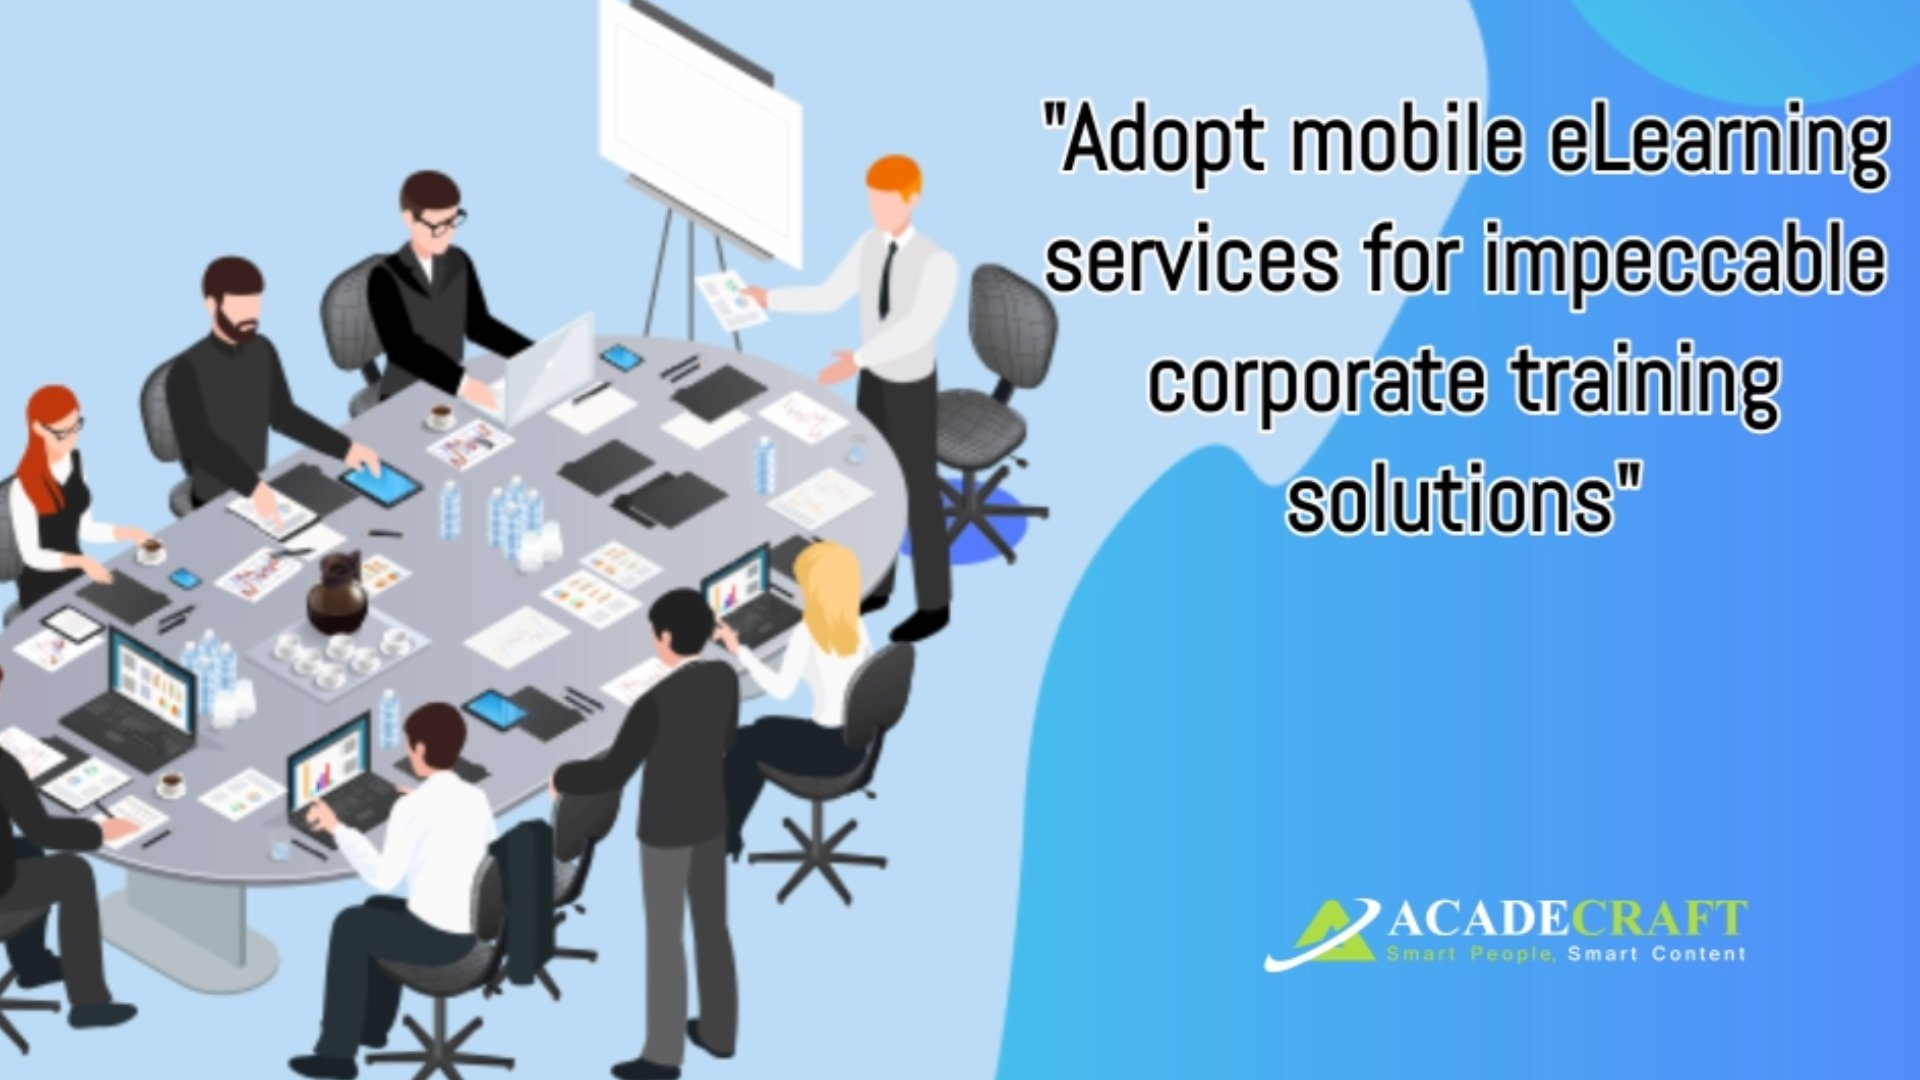 Adopt mobile eLearning services for impeccable corporate training solutions